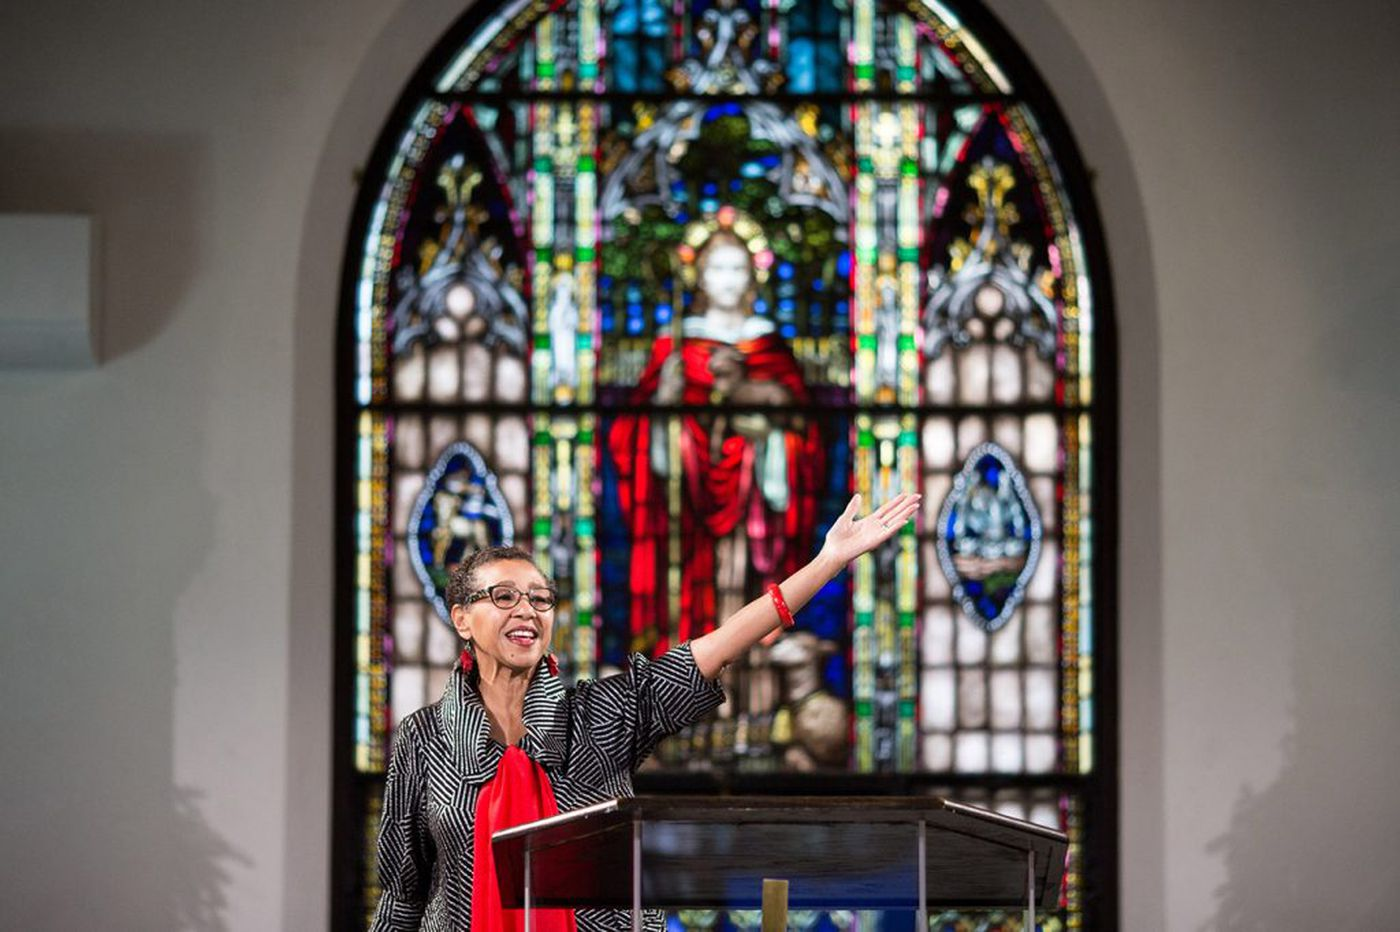 A doctor-turned-preacher urges her flock to make end-of-life plans